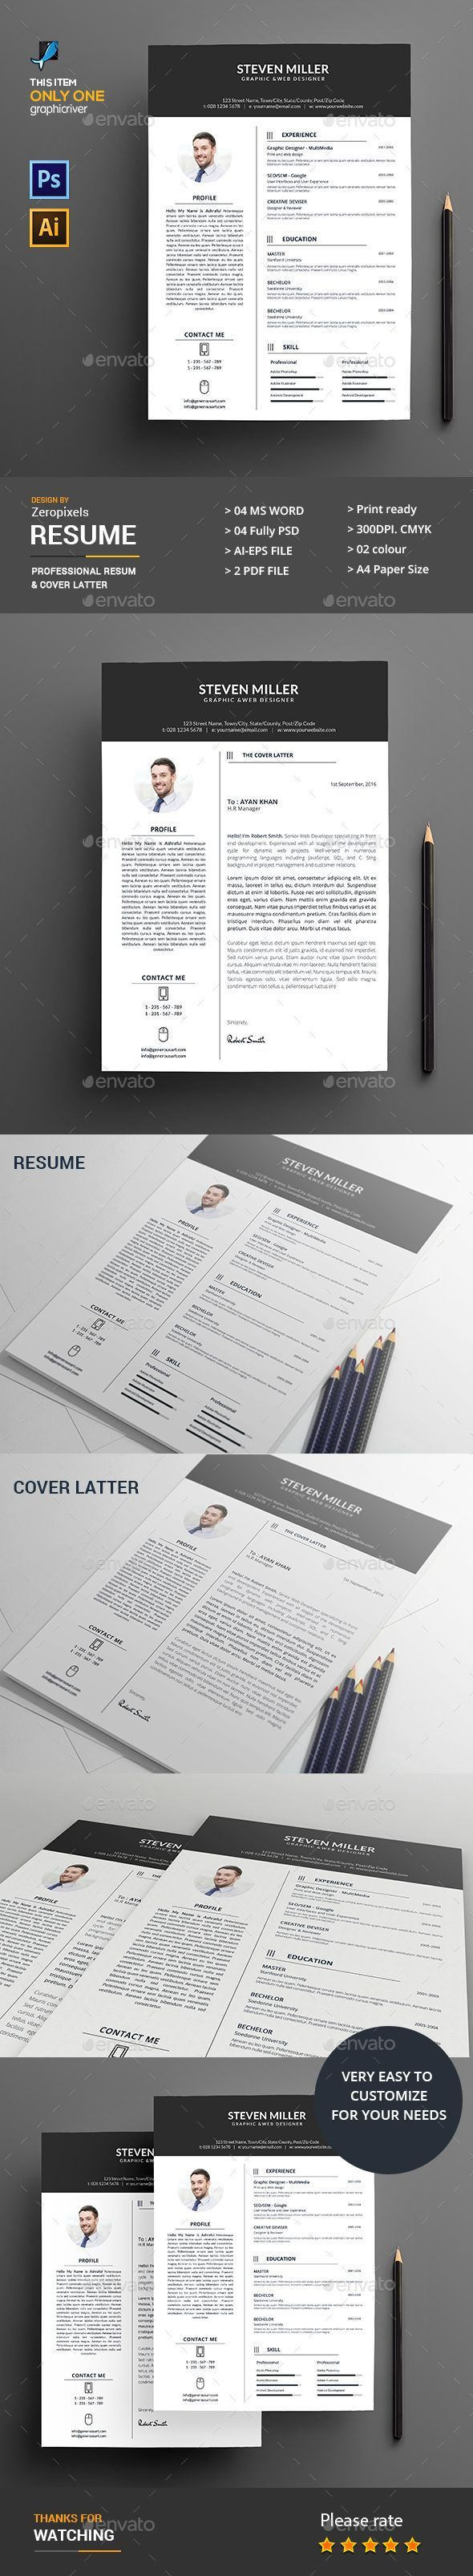 Cv Templates Pdf%0A  Resume  Template Cover Letter instant download by u